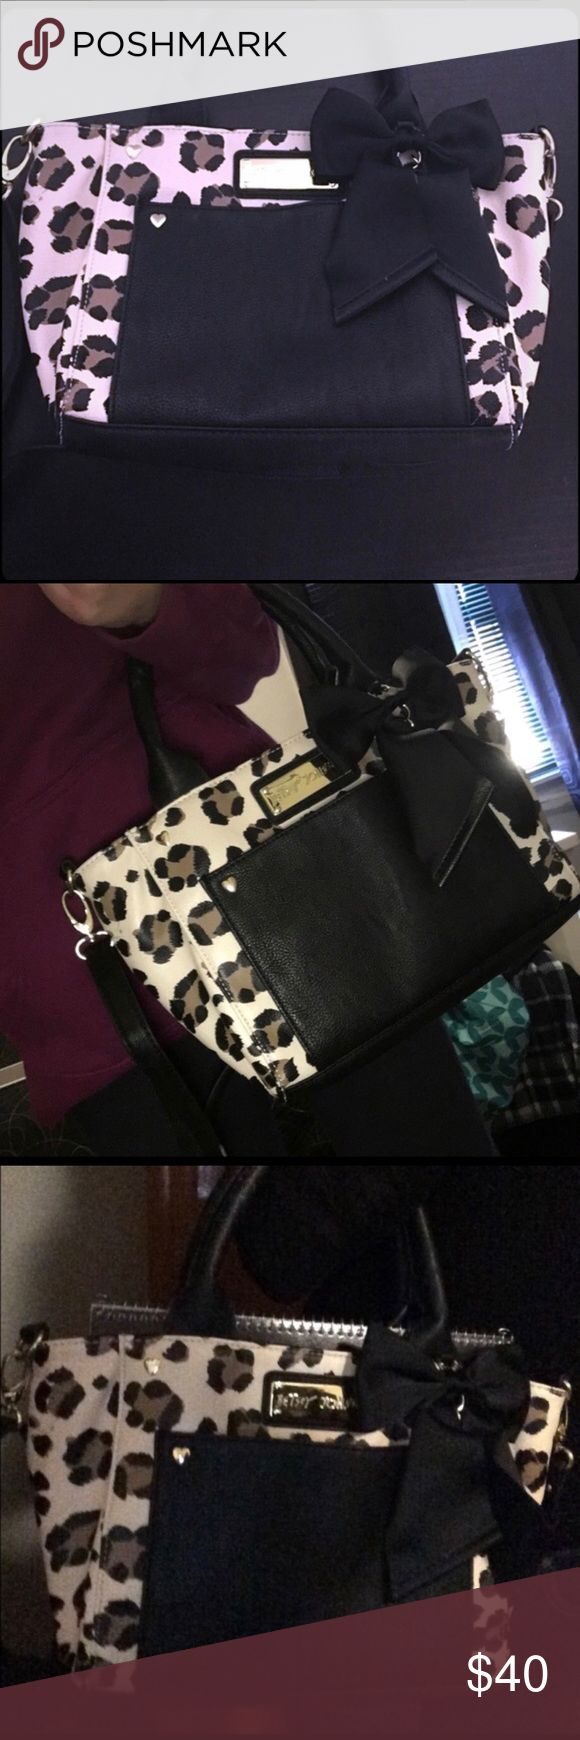 Betsy Johnson Purse Cute cheetah print purse with a black bow Betsey Johnson Bags